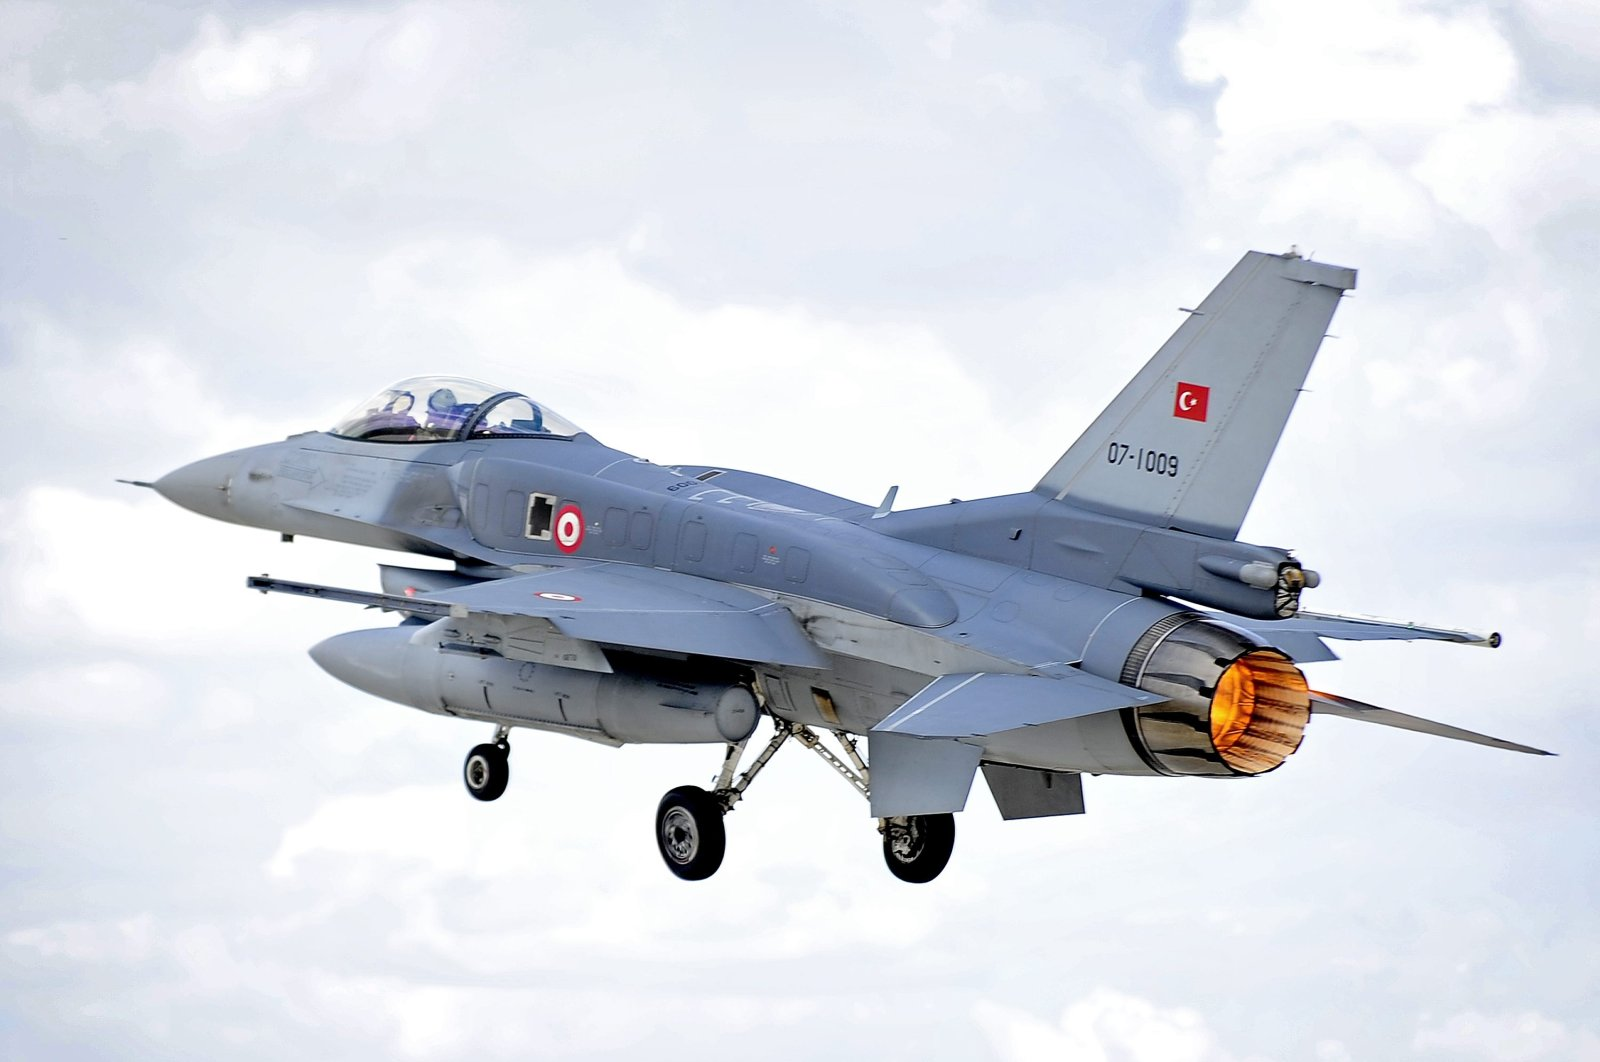 An F-16 Fighting Falcon of the Turkish Air Force takes off on a sortie from an air base during Exercise Anatolian Eagle, in Konya, Turkey. (Courtesy of Turkish Ministry of Defense)